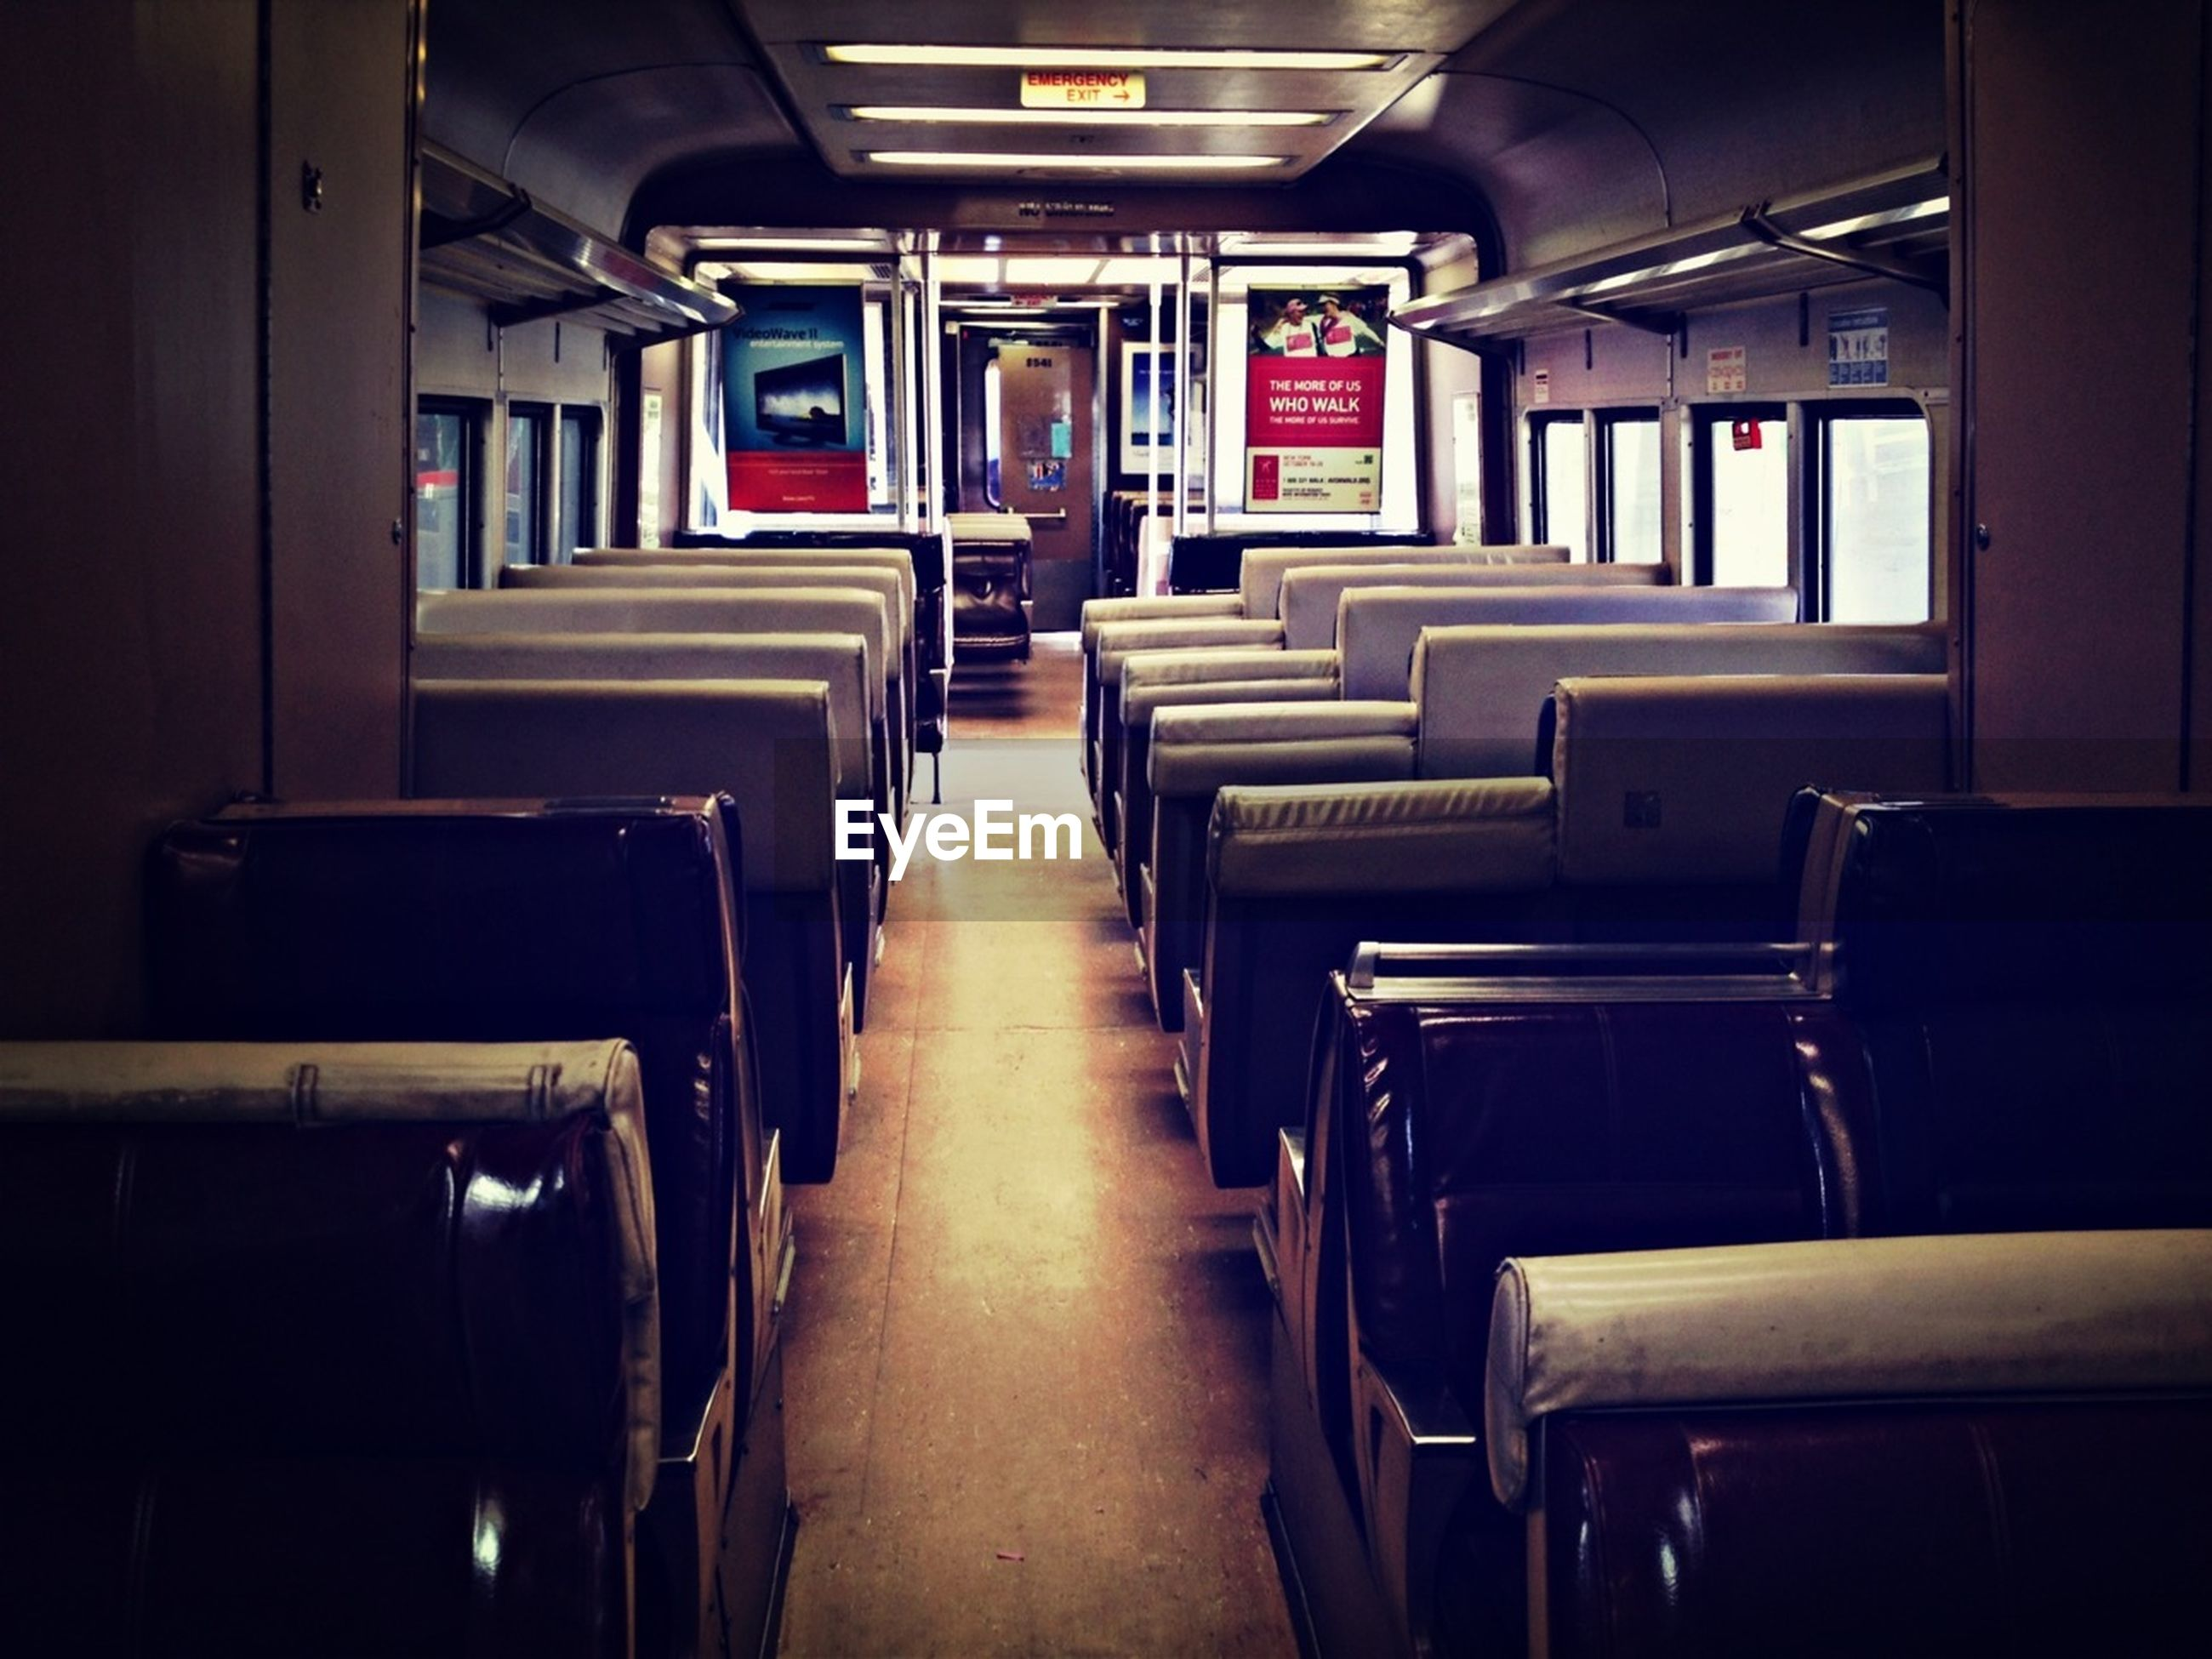 indoors, empty, absence, interior, chair, vehicle seat, seat, in a row, vehicle interior, transportation, illuminated, no people, public transportation, travel, window, diminishing perspective, the way forward, corridor, mode of transport, built structure